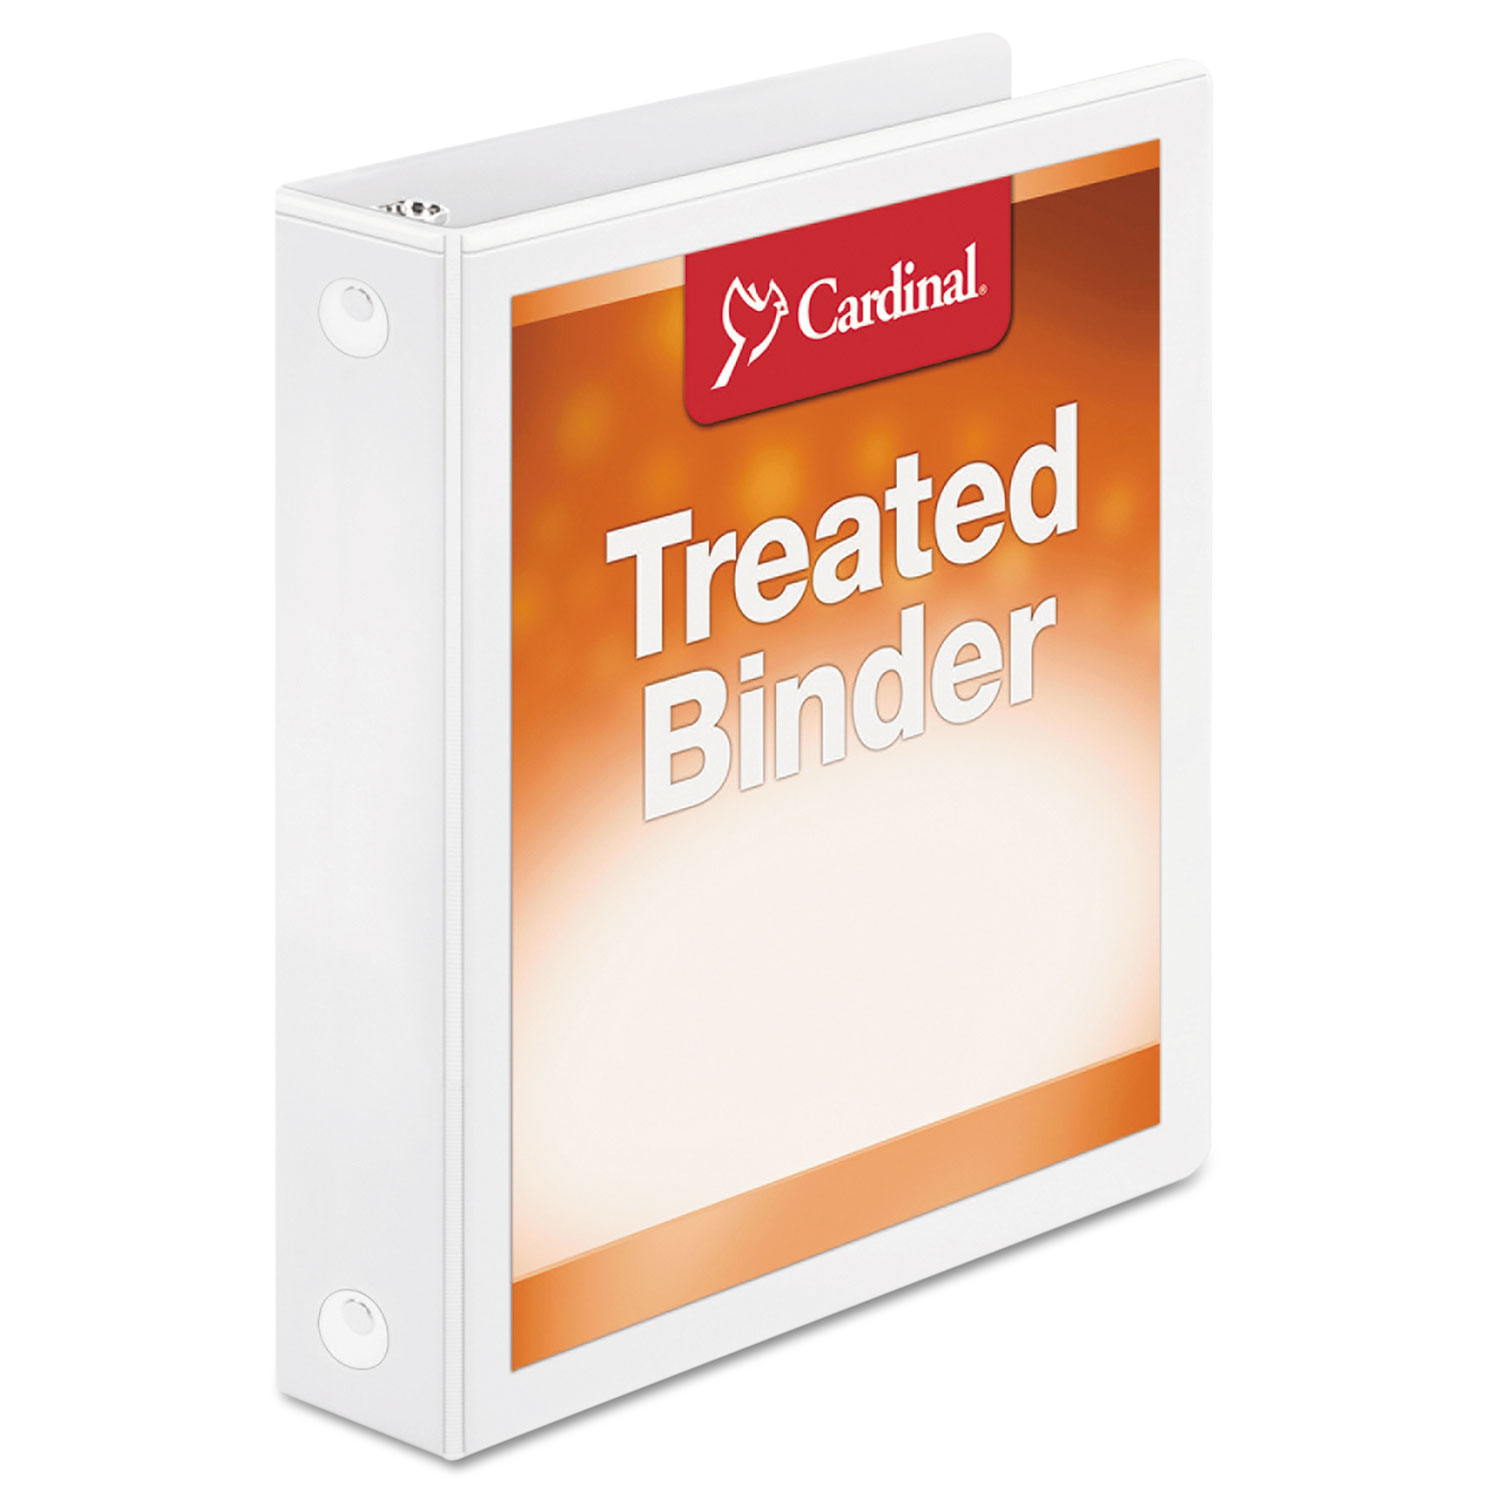 "Treated Binder ClearVue Locking Round Ring Binder, 3 Rings, 1.5"" Capacity, 11 x 8.5, White"